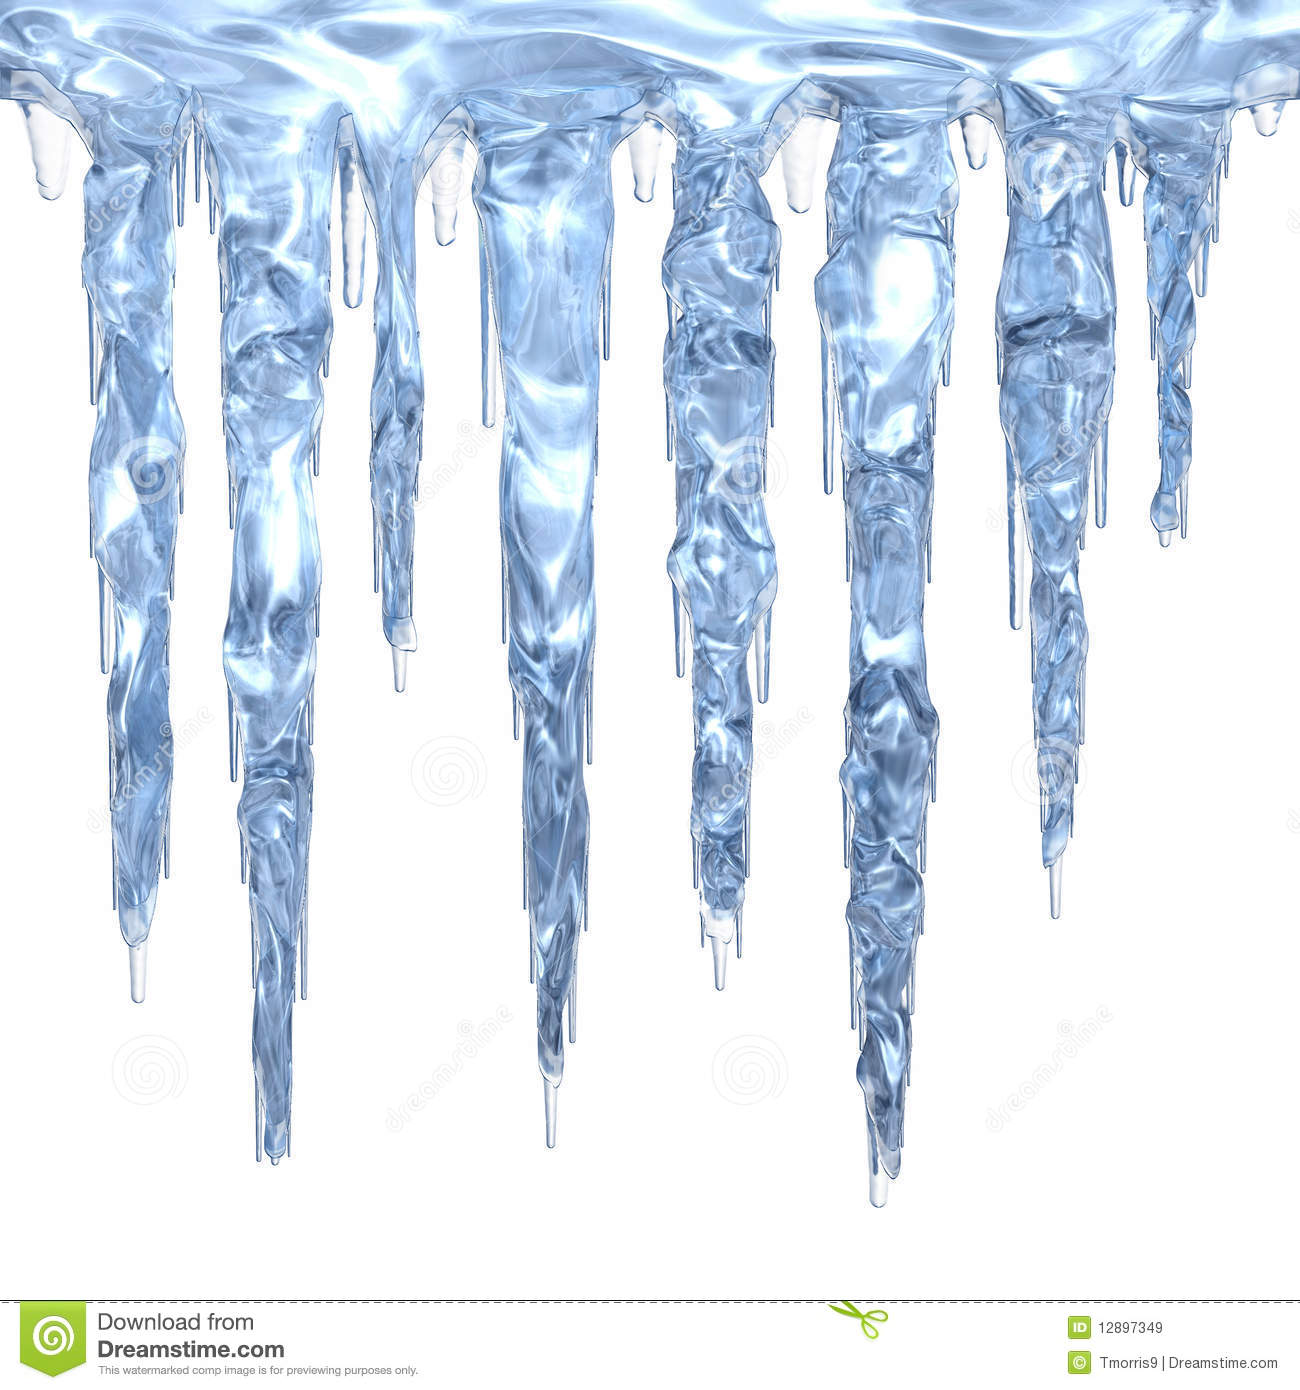 Icicle PNG - 3377